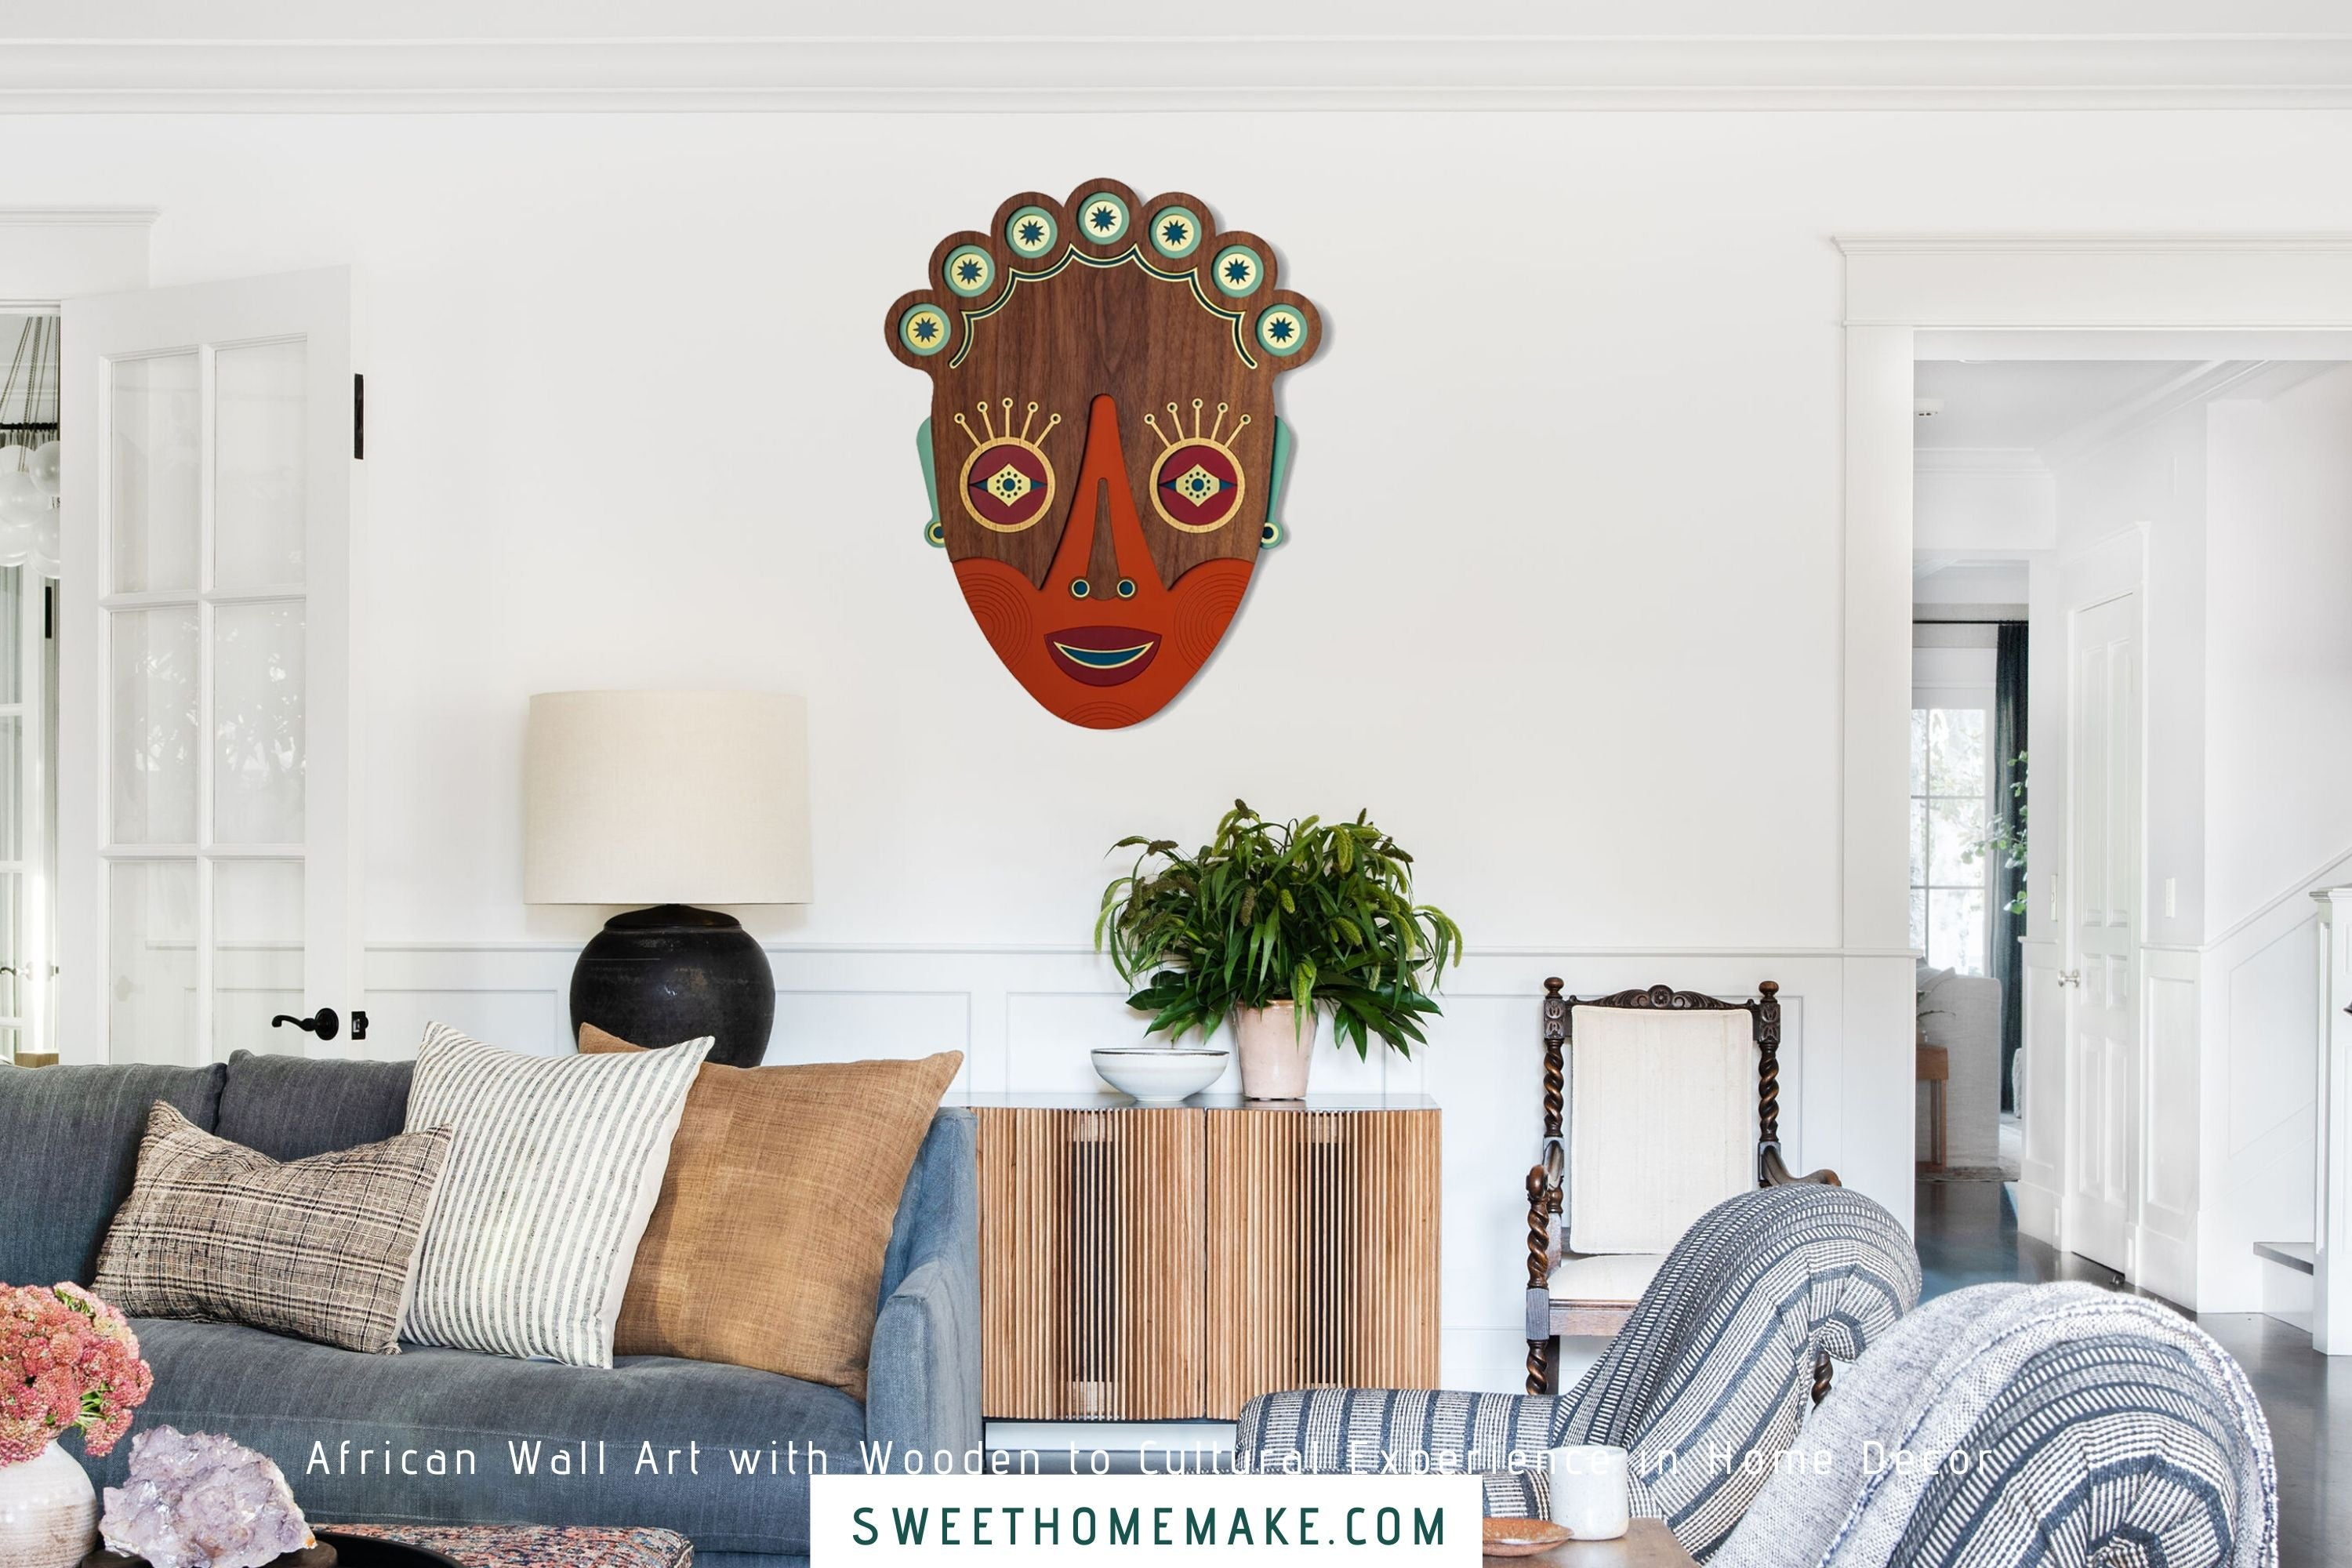 Afrocentric and African Wall Art with Wooden to Cultural Experience in Home Decor